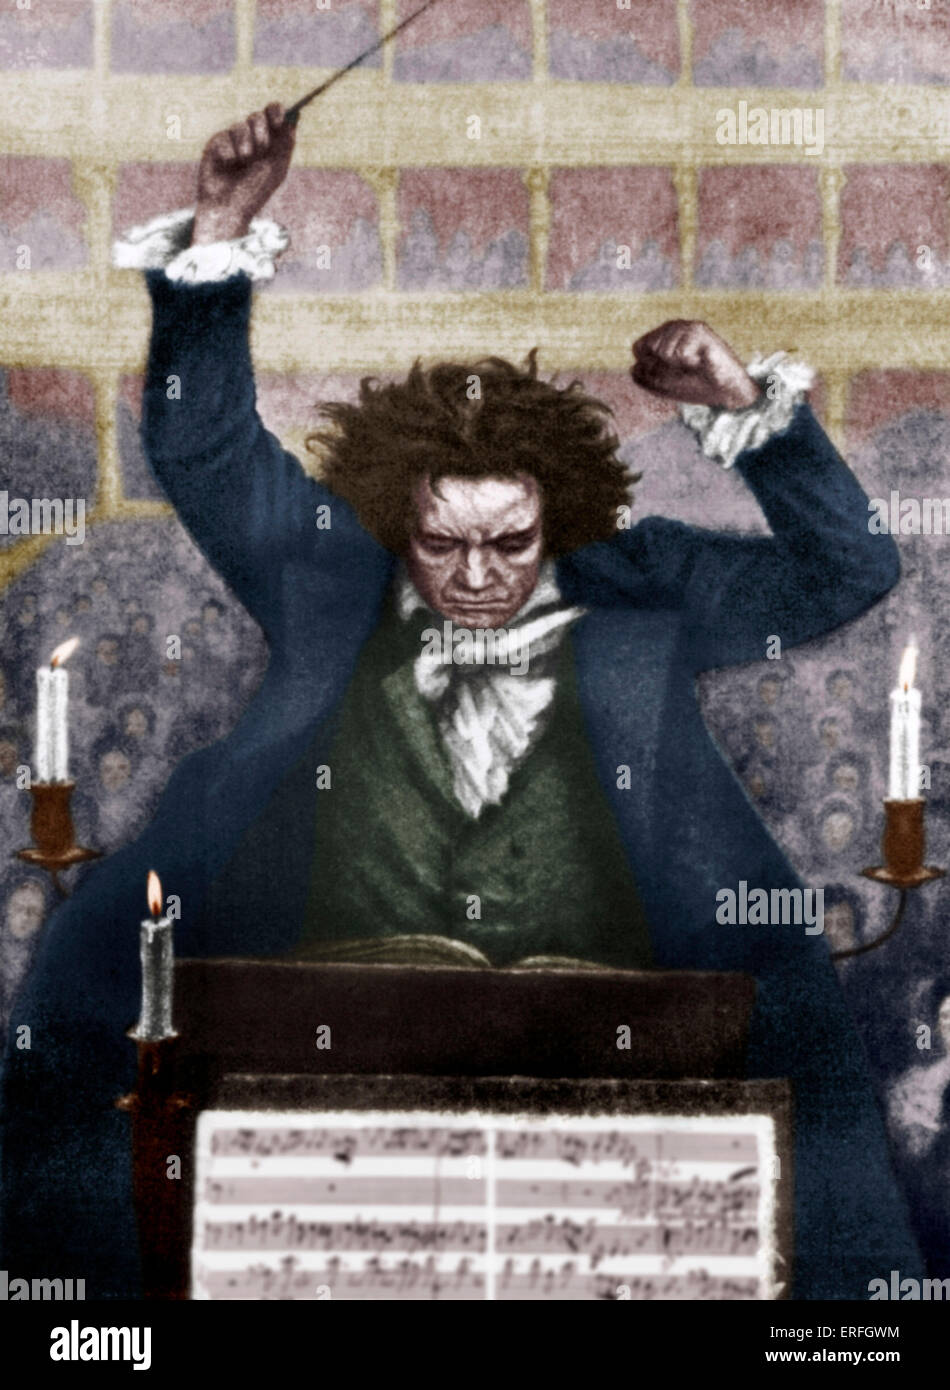 a study of ludwig van beethoven Immediately download the ludwig van beethoven summary, chapter-by-chapter analysis, book notes, essays, quotes, character descriptions, lesson plans, and more.